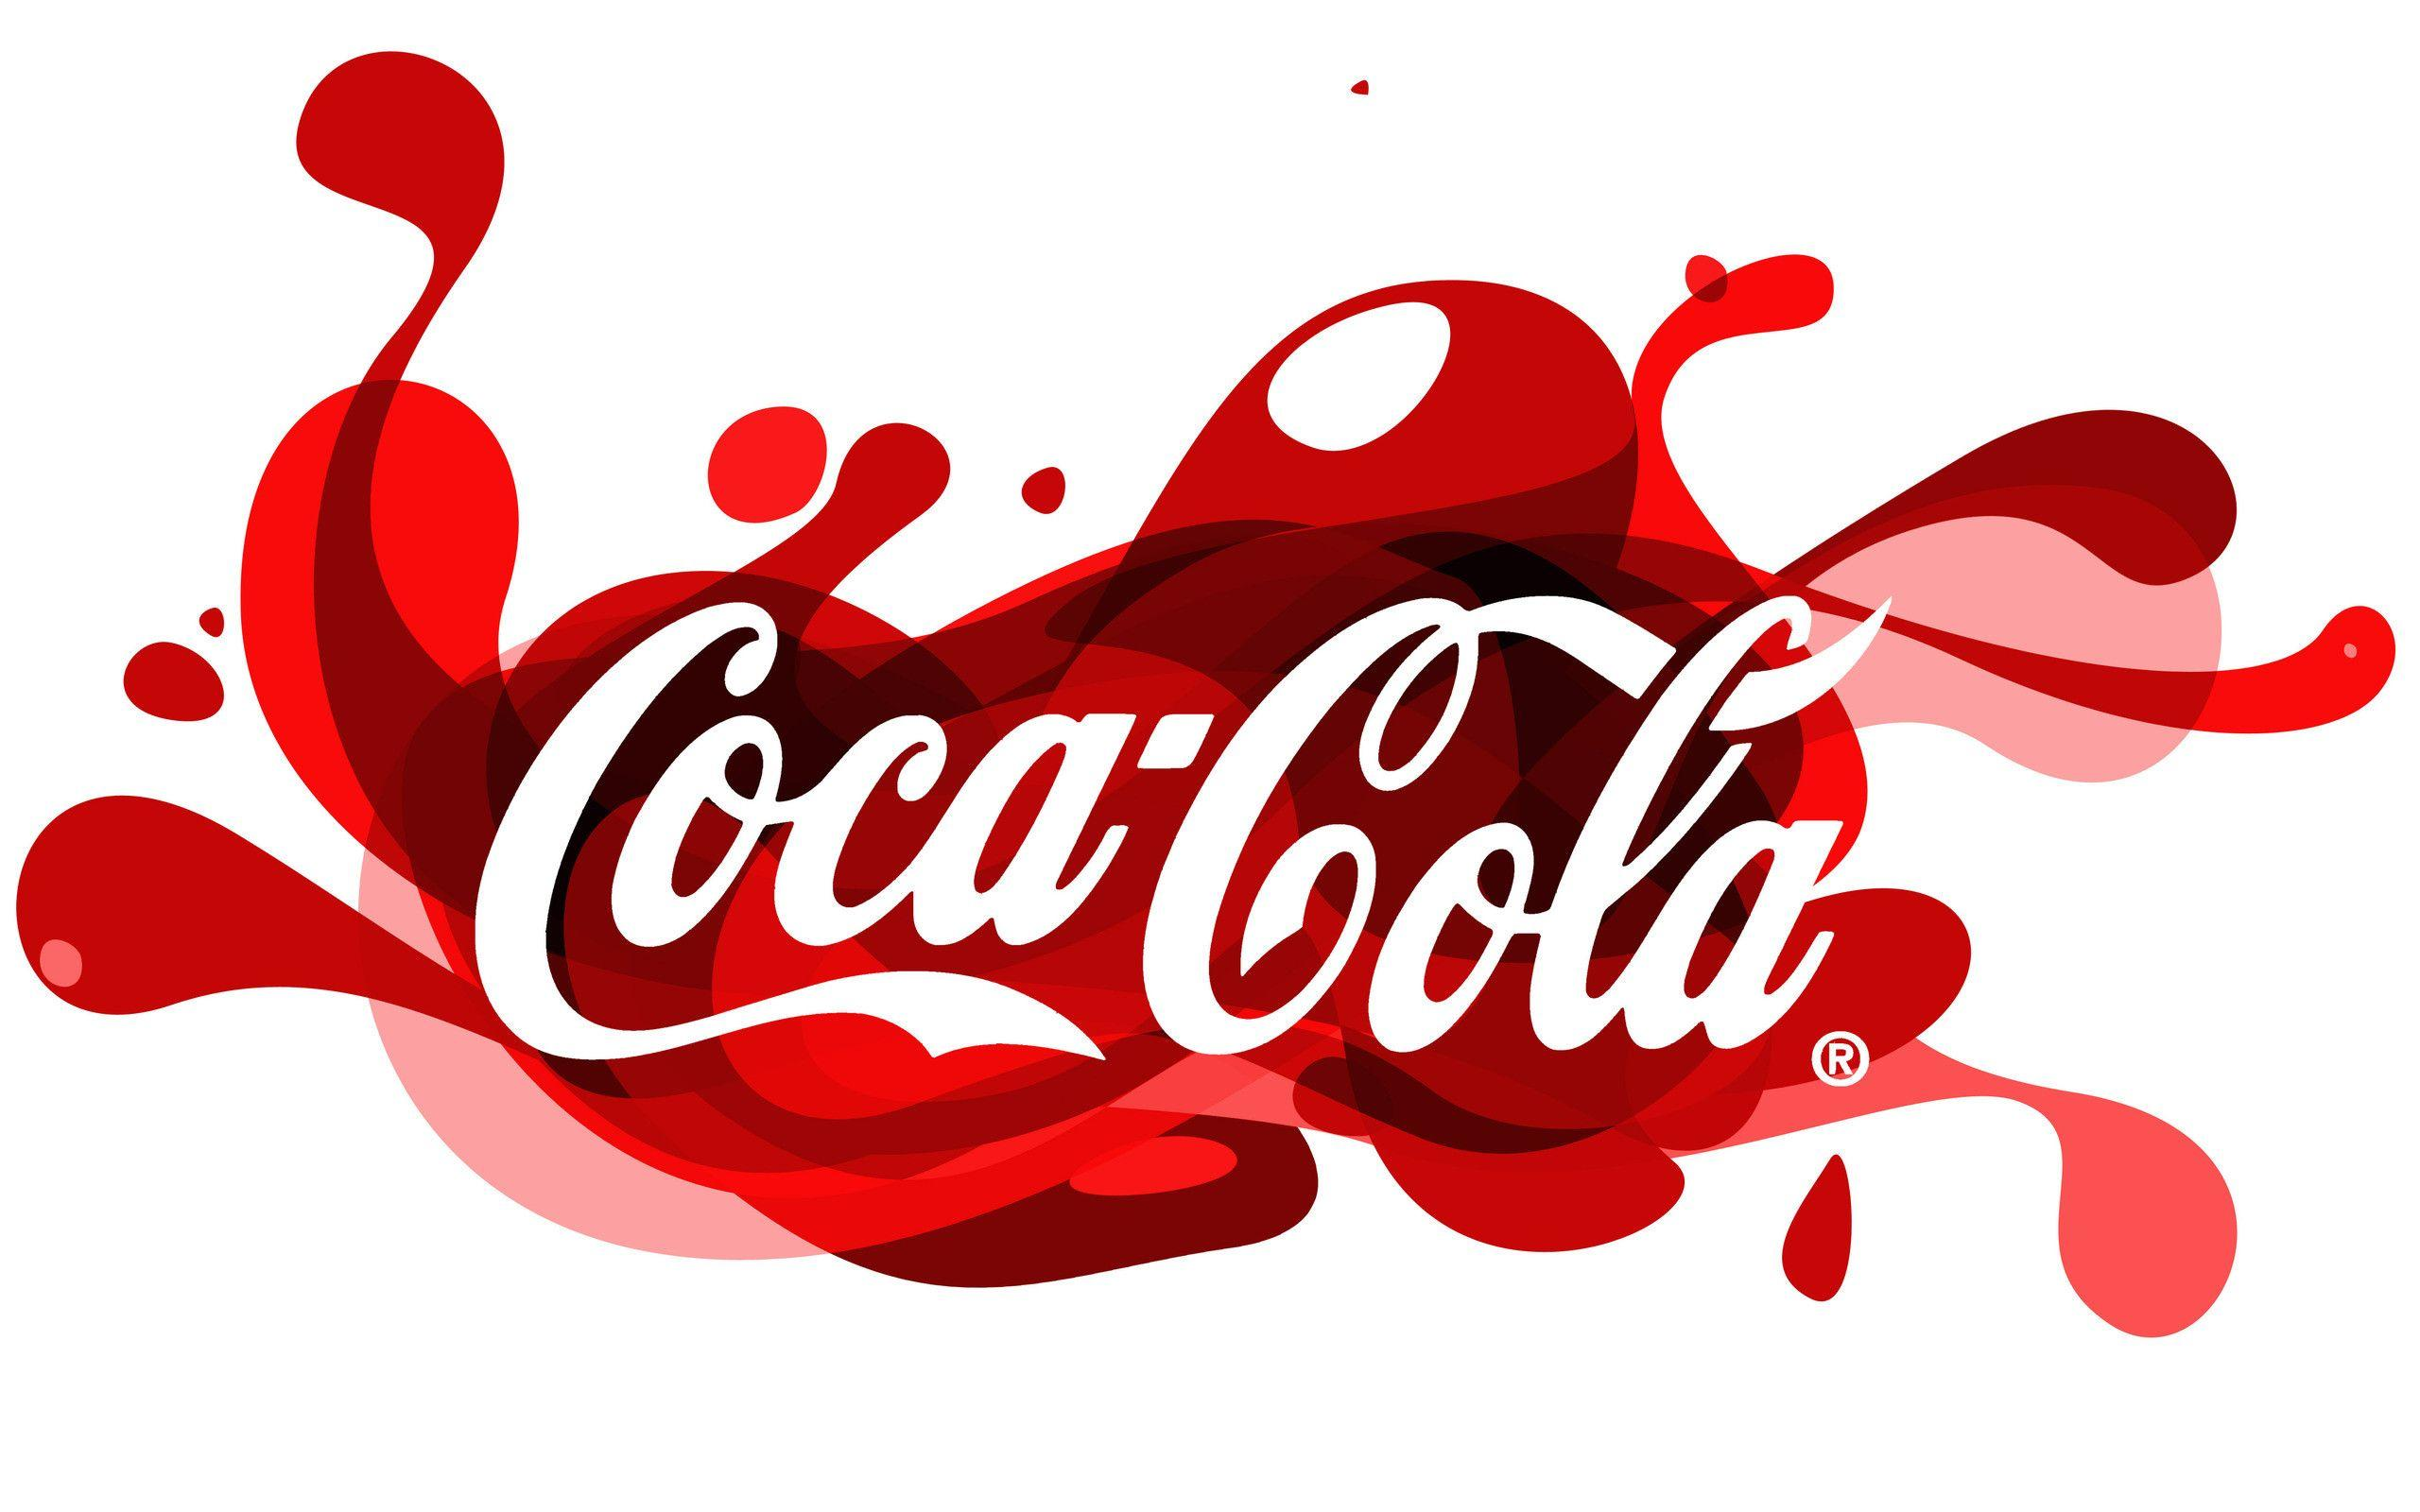 Coca Cola Wallpapers | HD Wallpapers